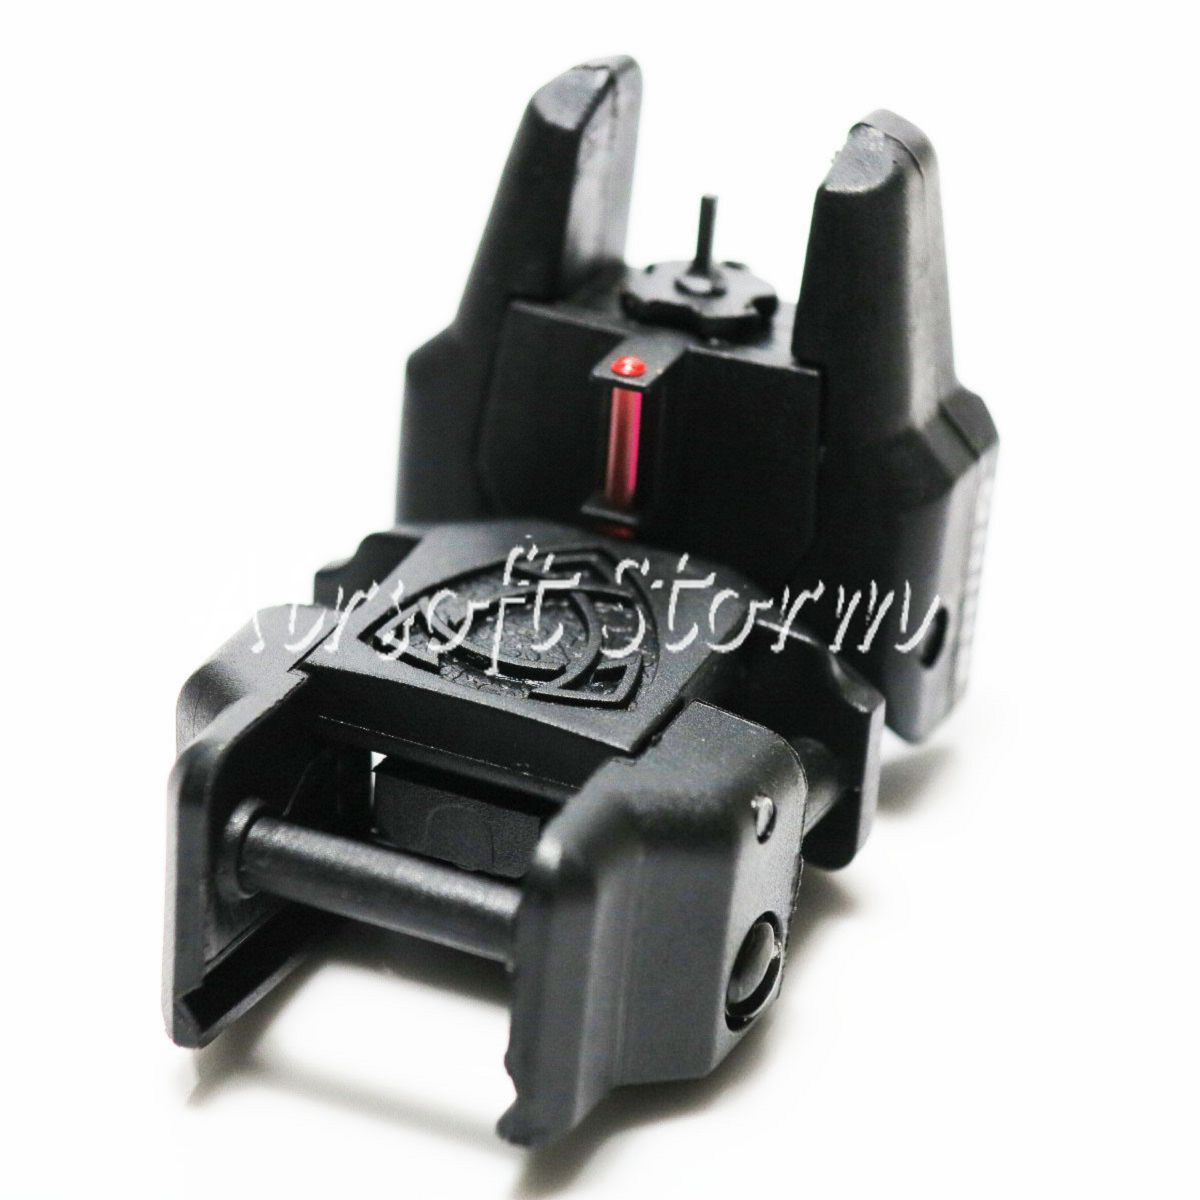 Airsoft AEG Gear APS Rhino Front Sight with Fiber Optic Black/Red